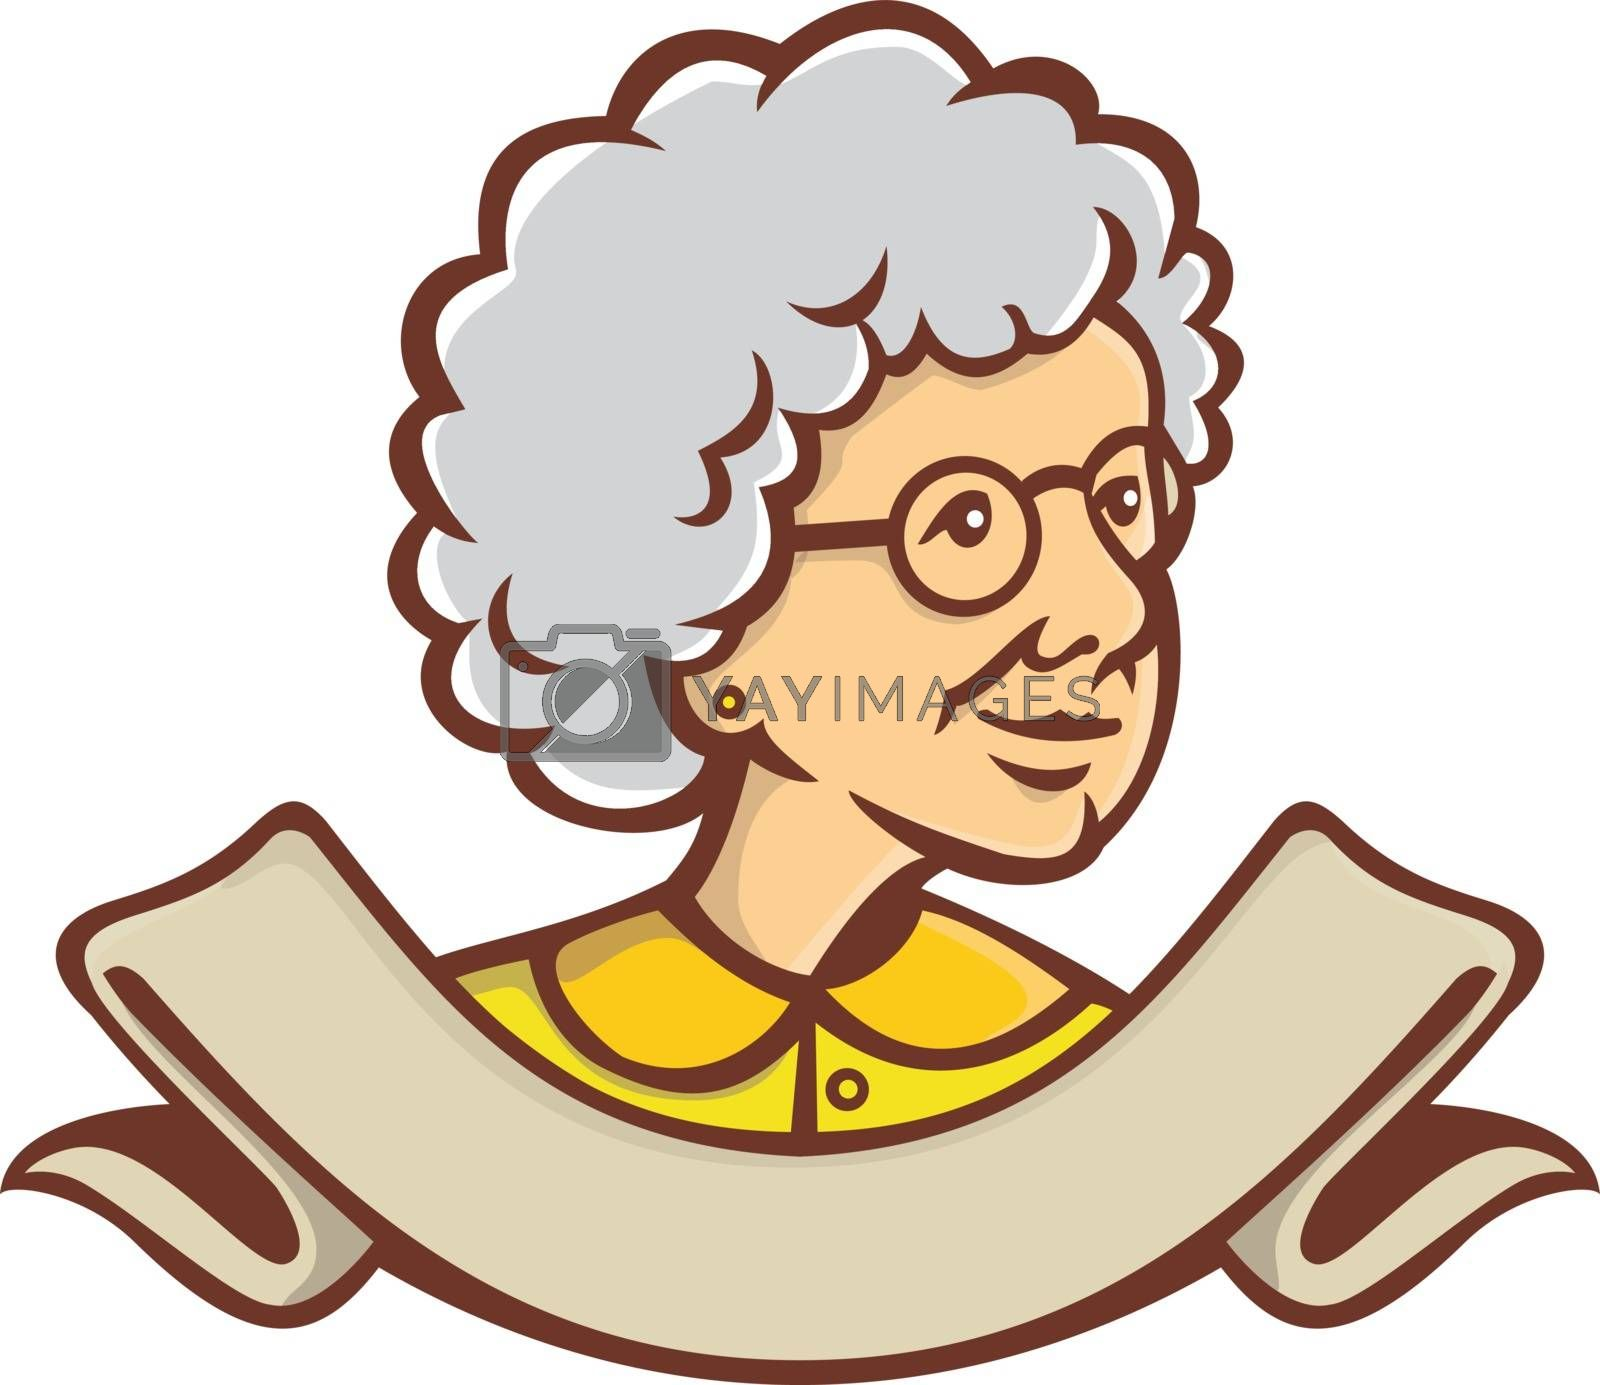 Retro style illustration of bust of a grandmother, granny, nanny or a senior adult female woman looking to side with ribbon at bottom on isolated background.